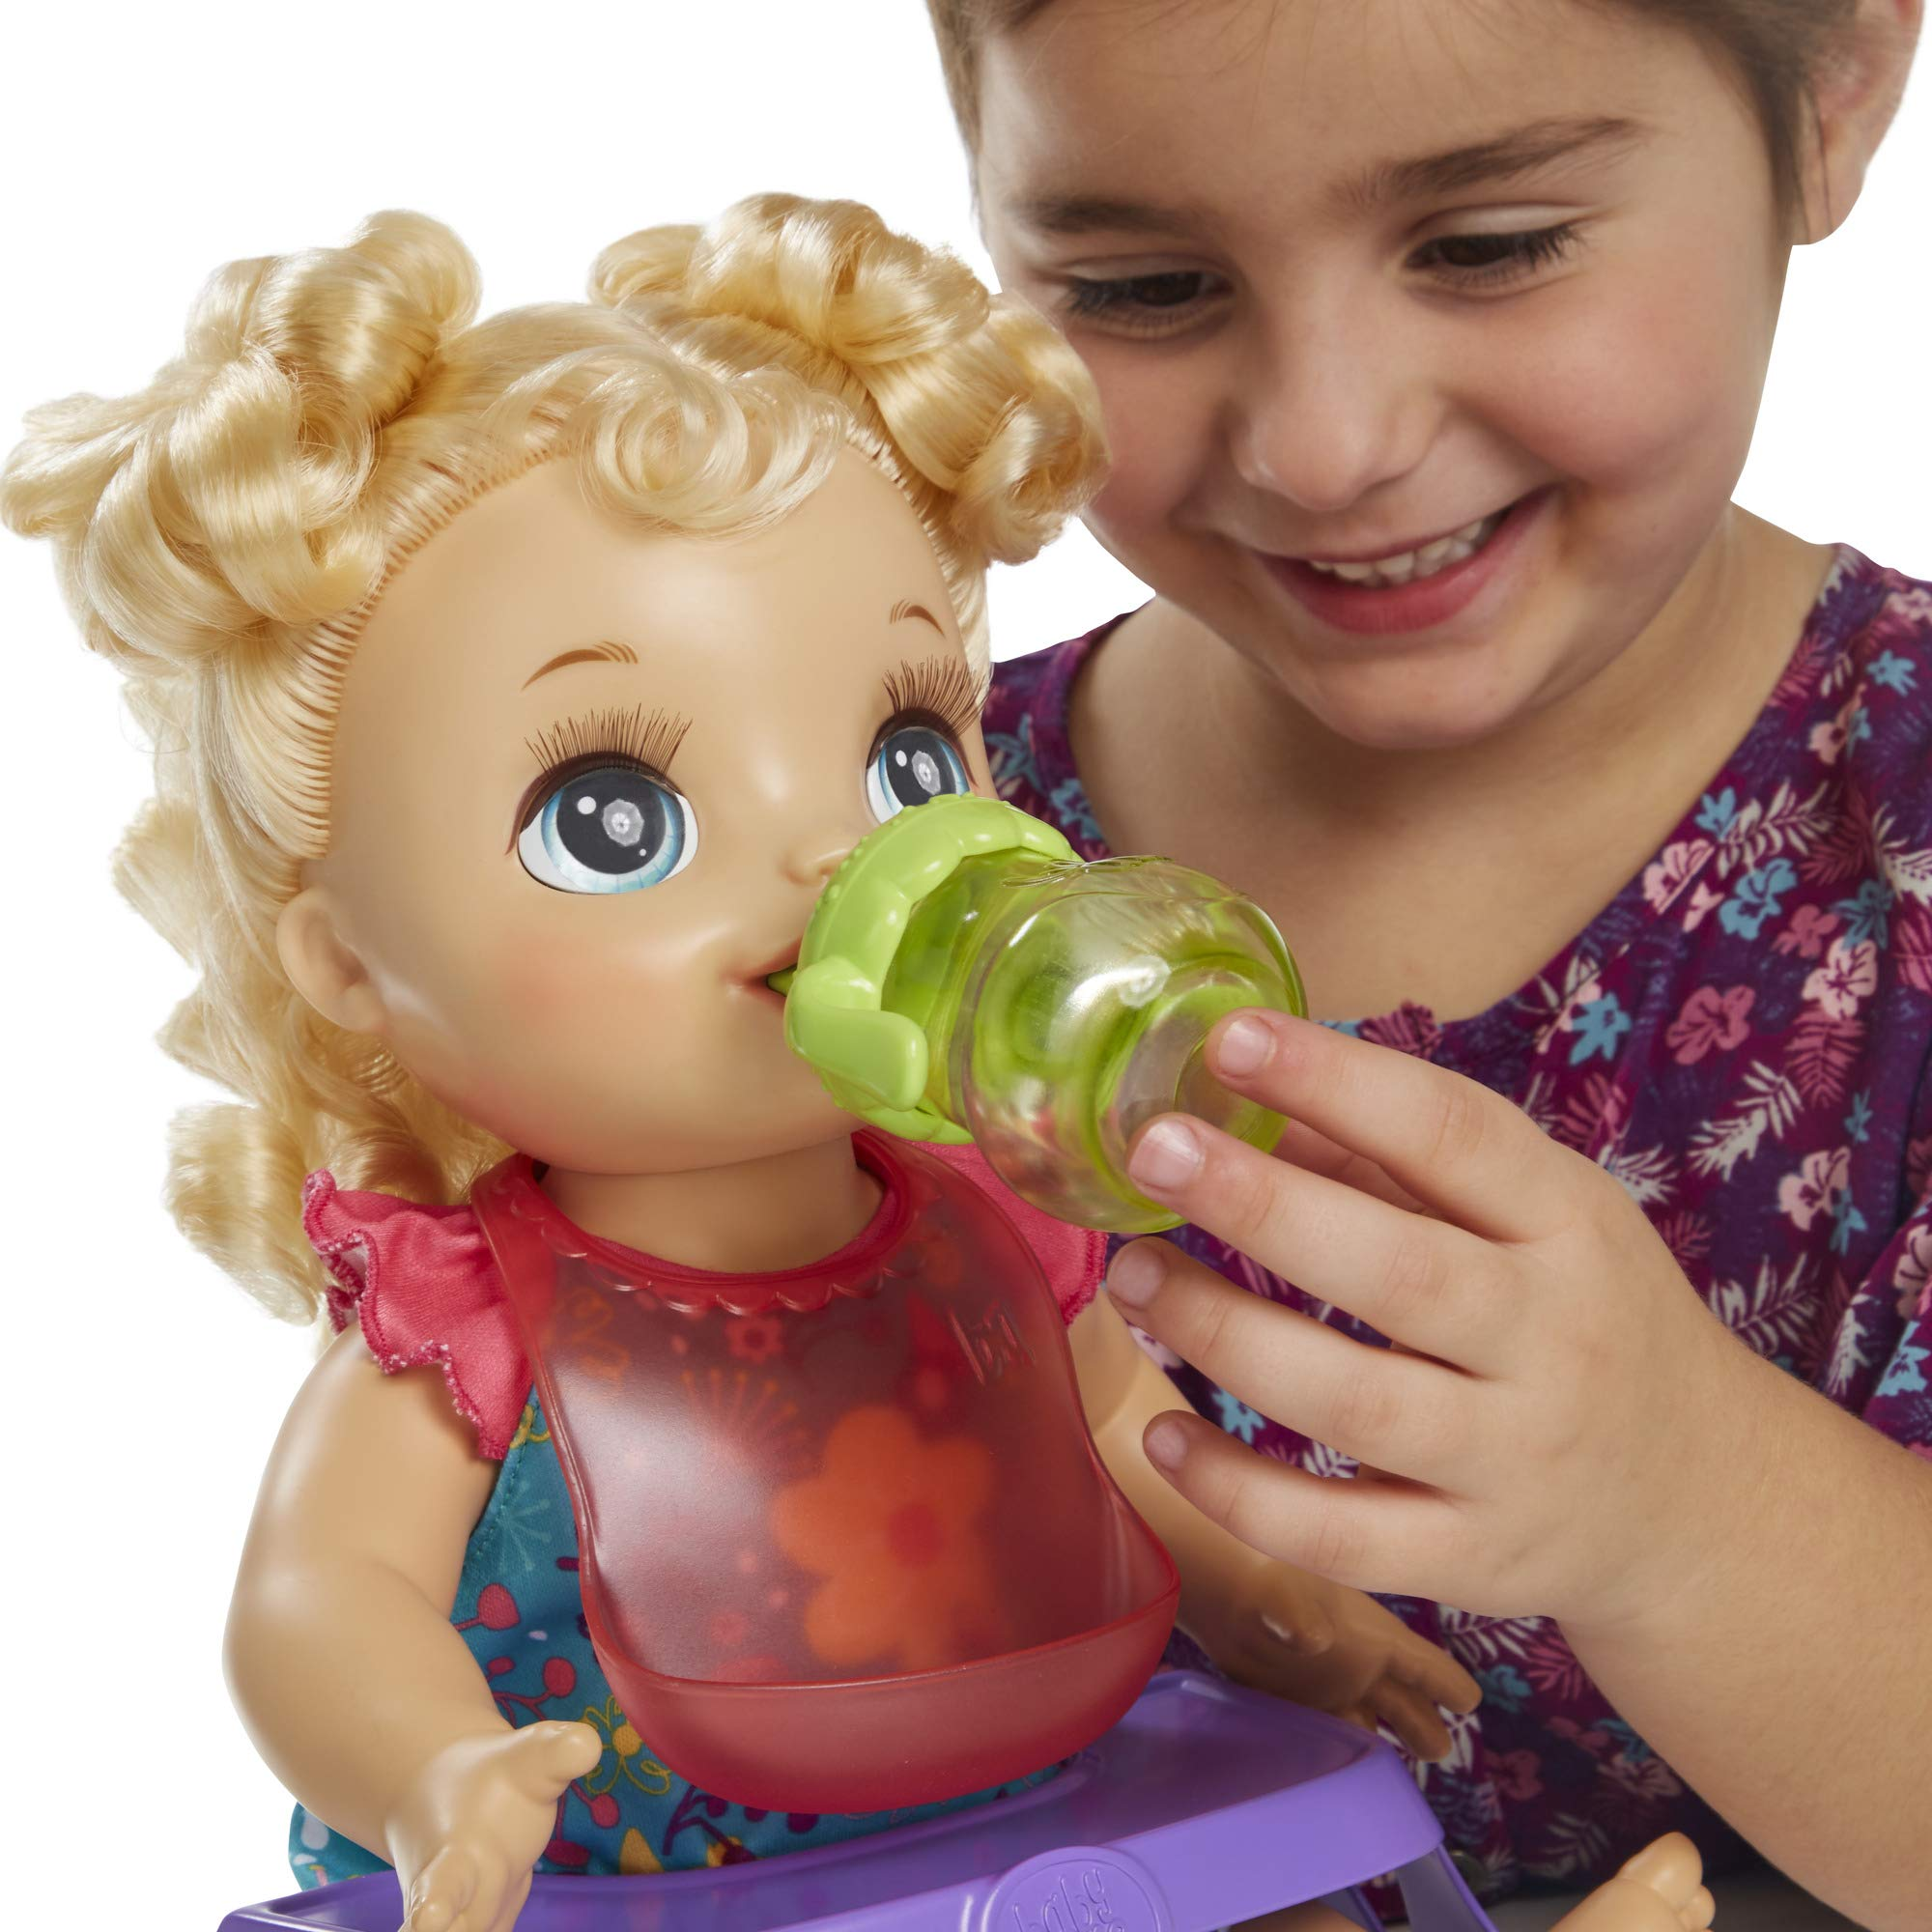 Baby Alive Happy Hungry Baby Blond Curly Hair Doll Makes 50 Sounds Jrtoyhut